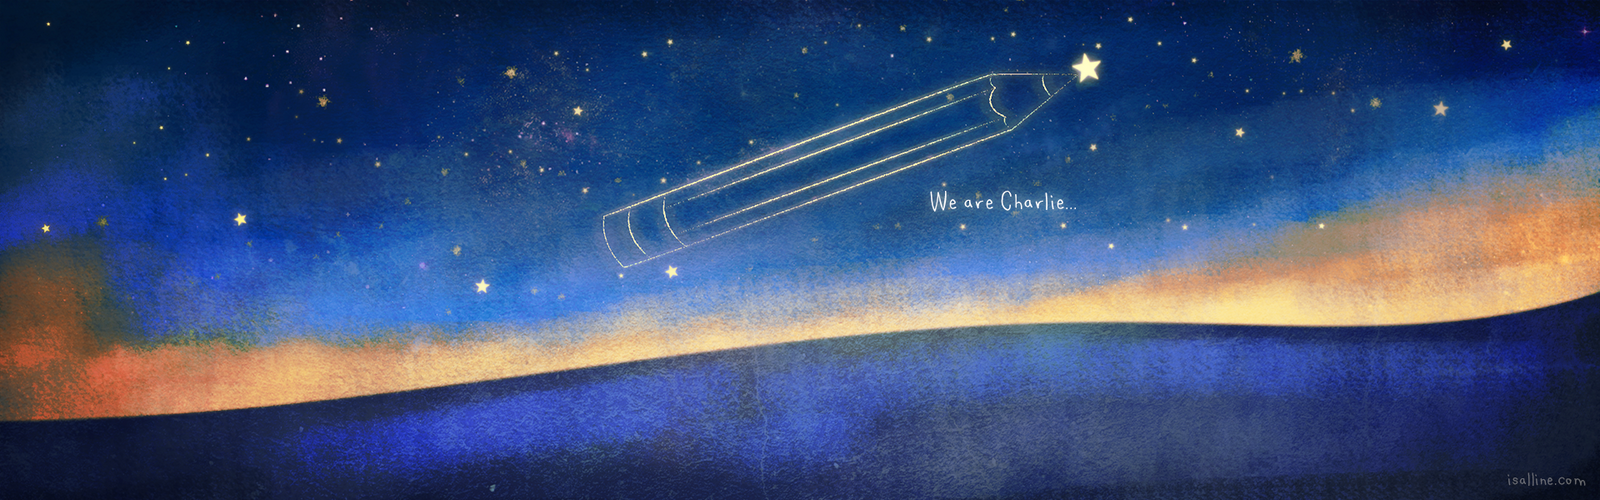 We are Charlie...